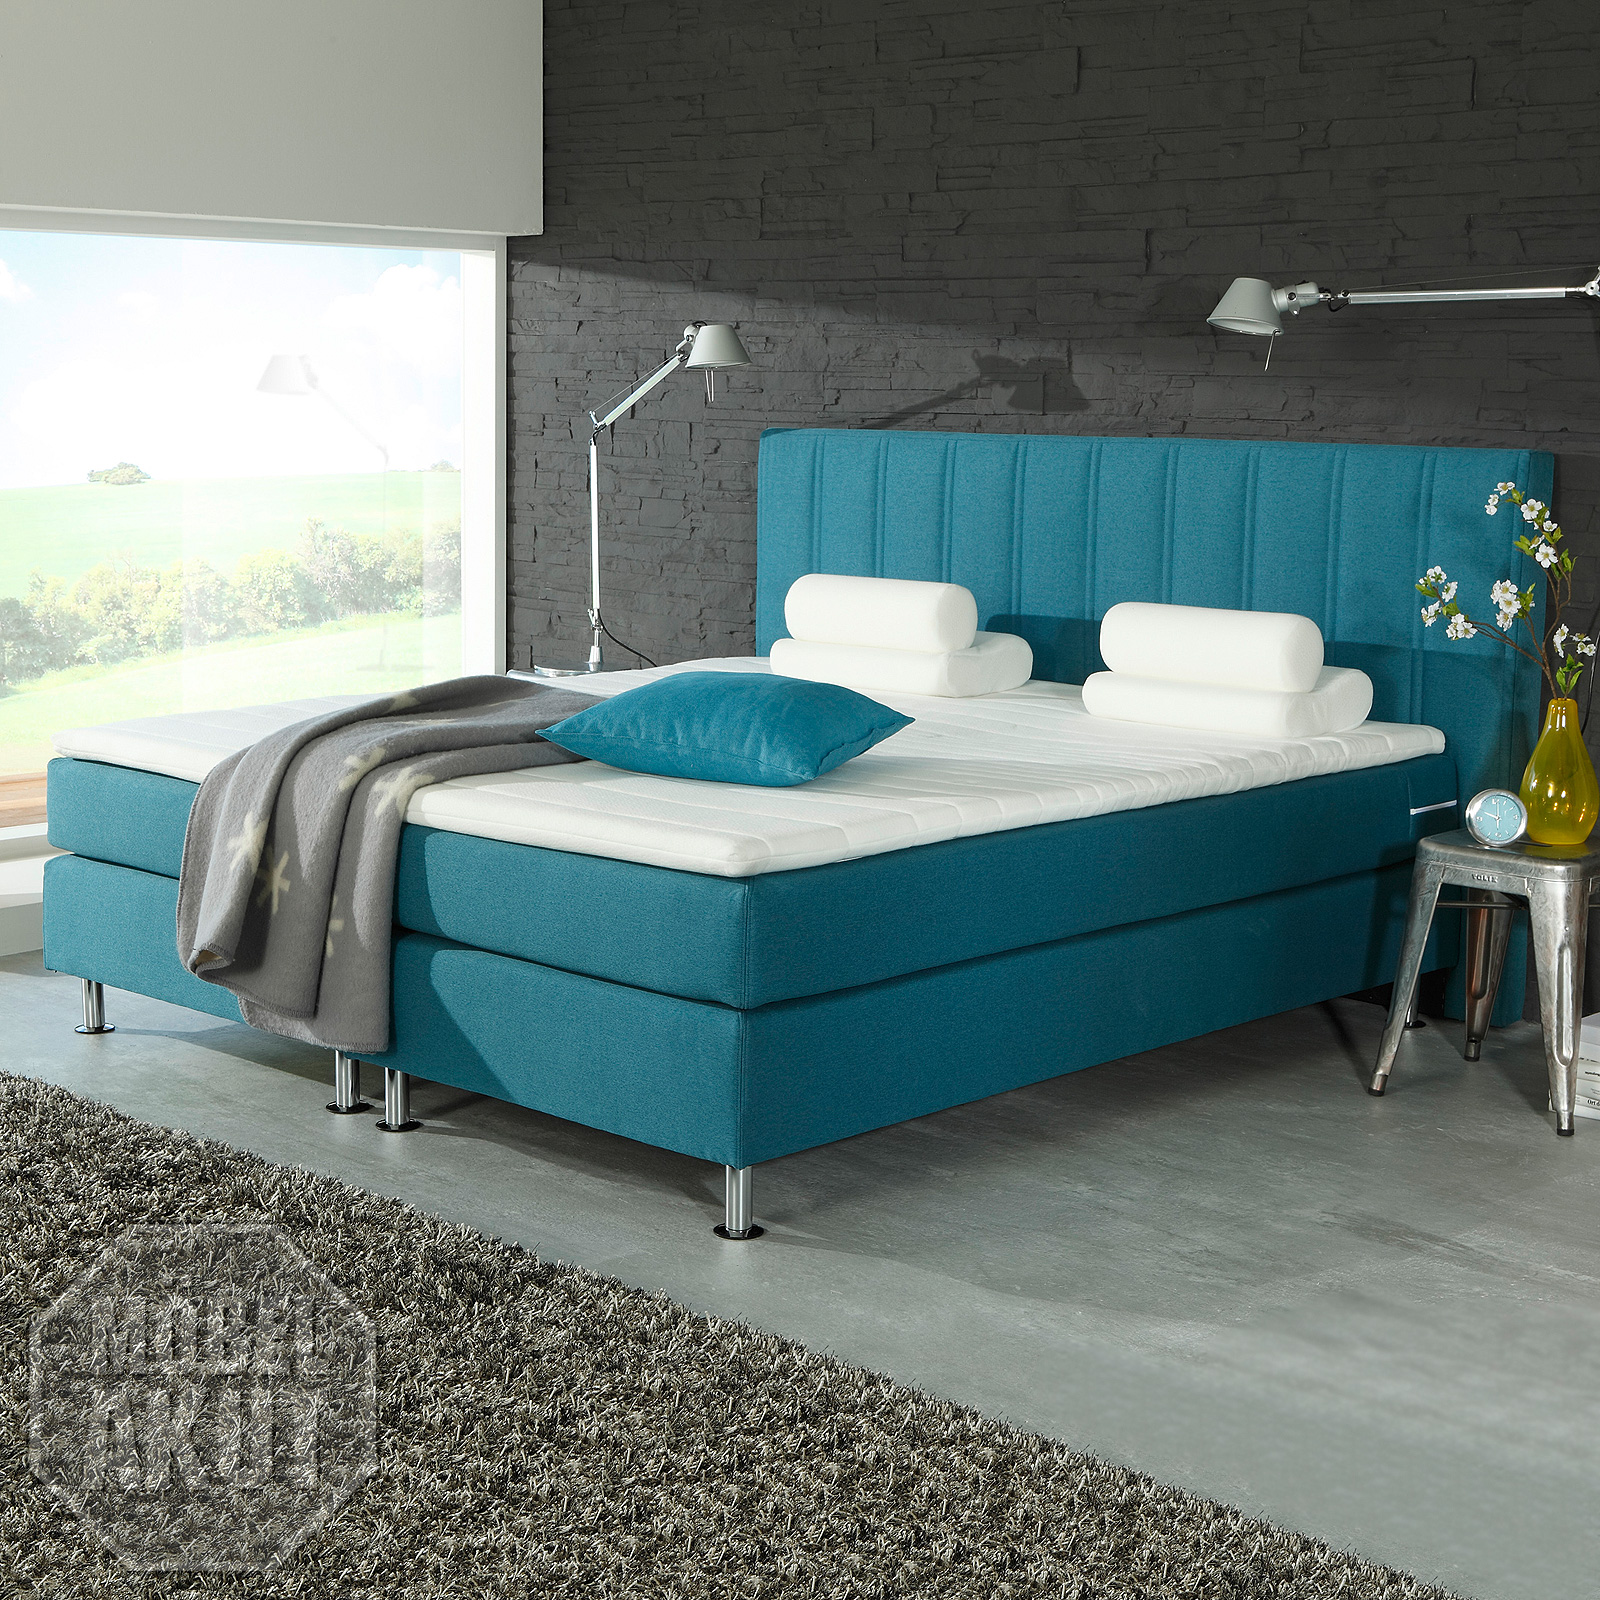 boxspring bett ohio doppelbett hotelbett in petrol blau inkl topper 180x200 cm ebay. Black Bedroom Furniture Sets. Home Design Ideas